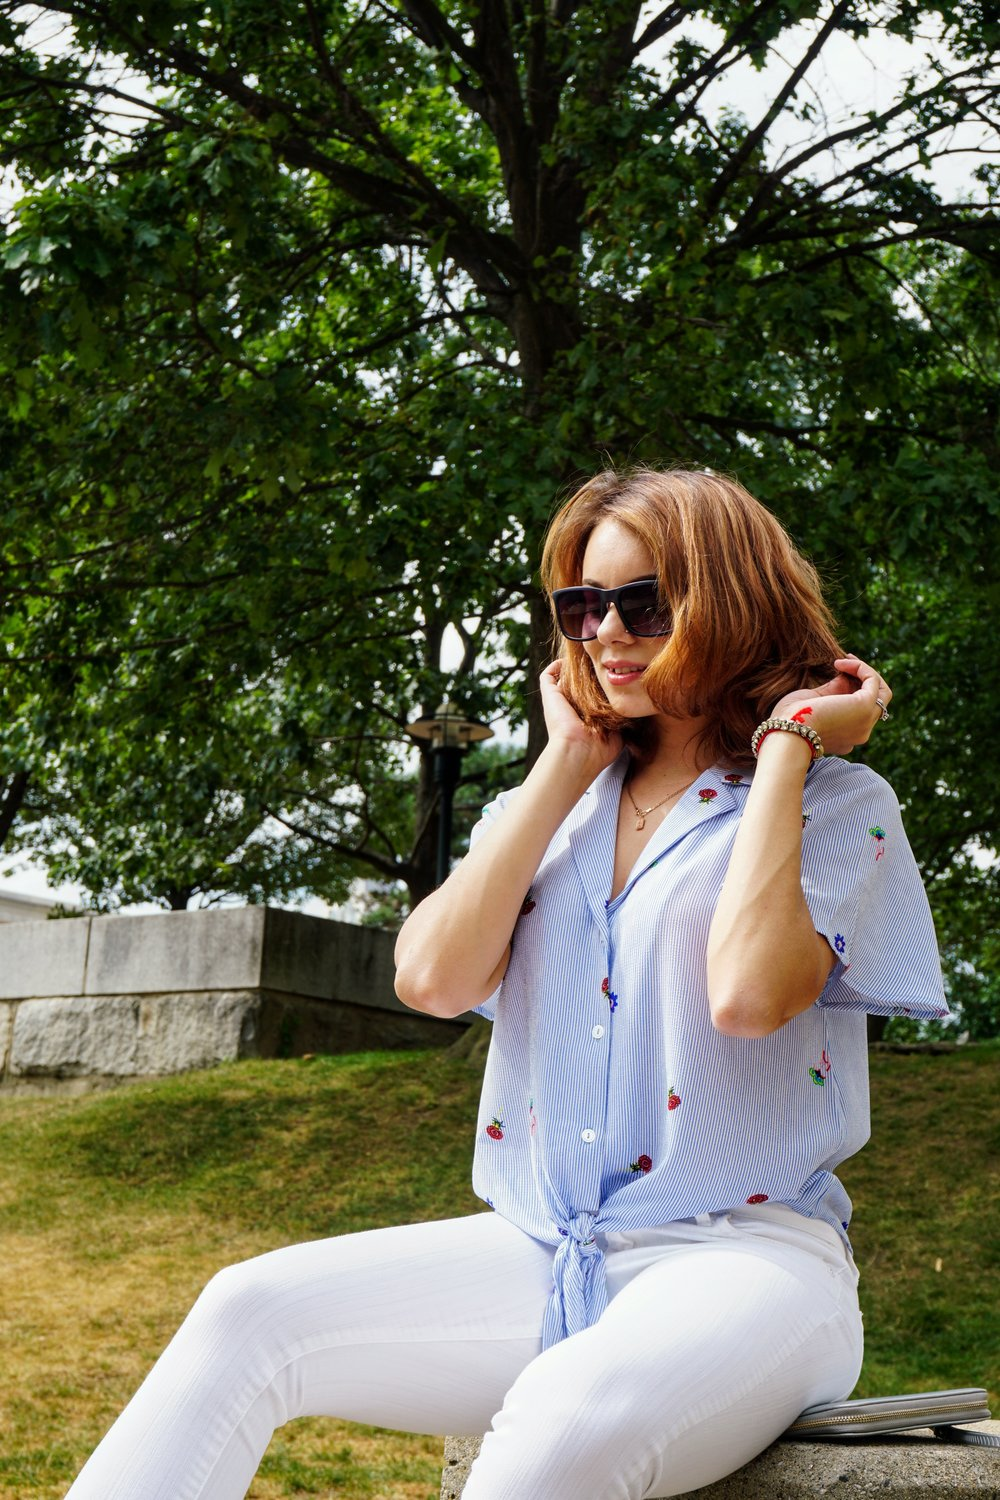 Fashion post featuring a blue and white outfit.